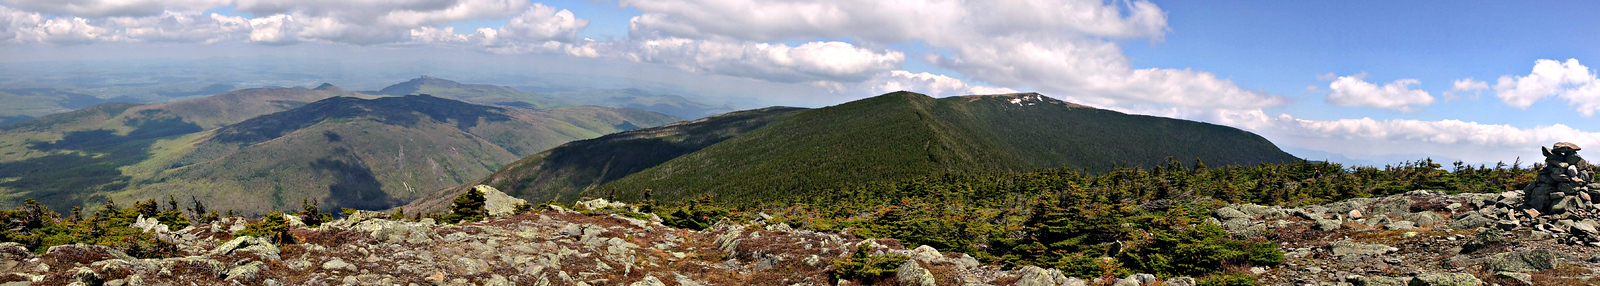 Moosilauke South Peak (May 17)